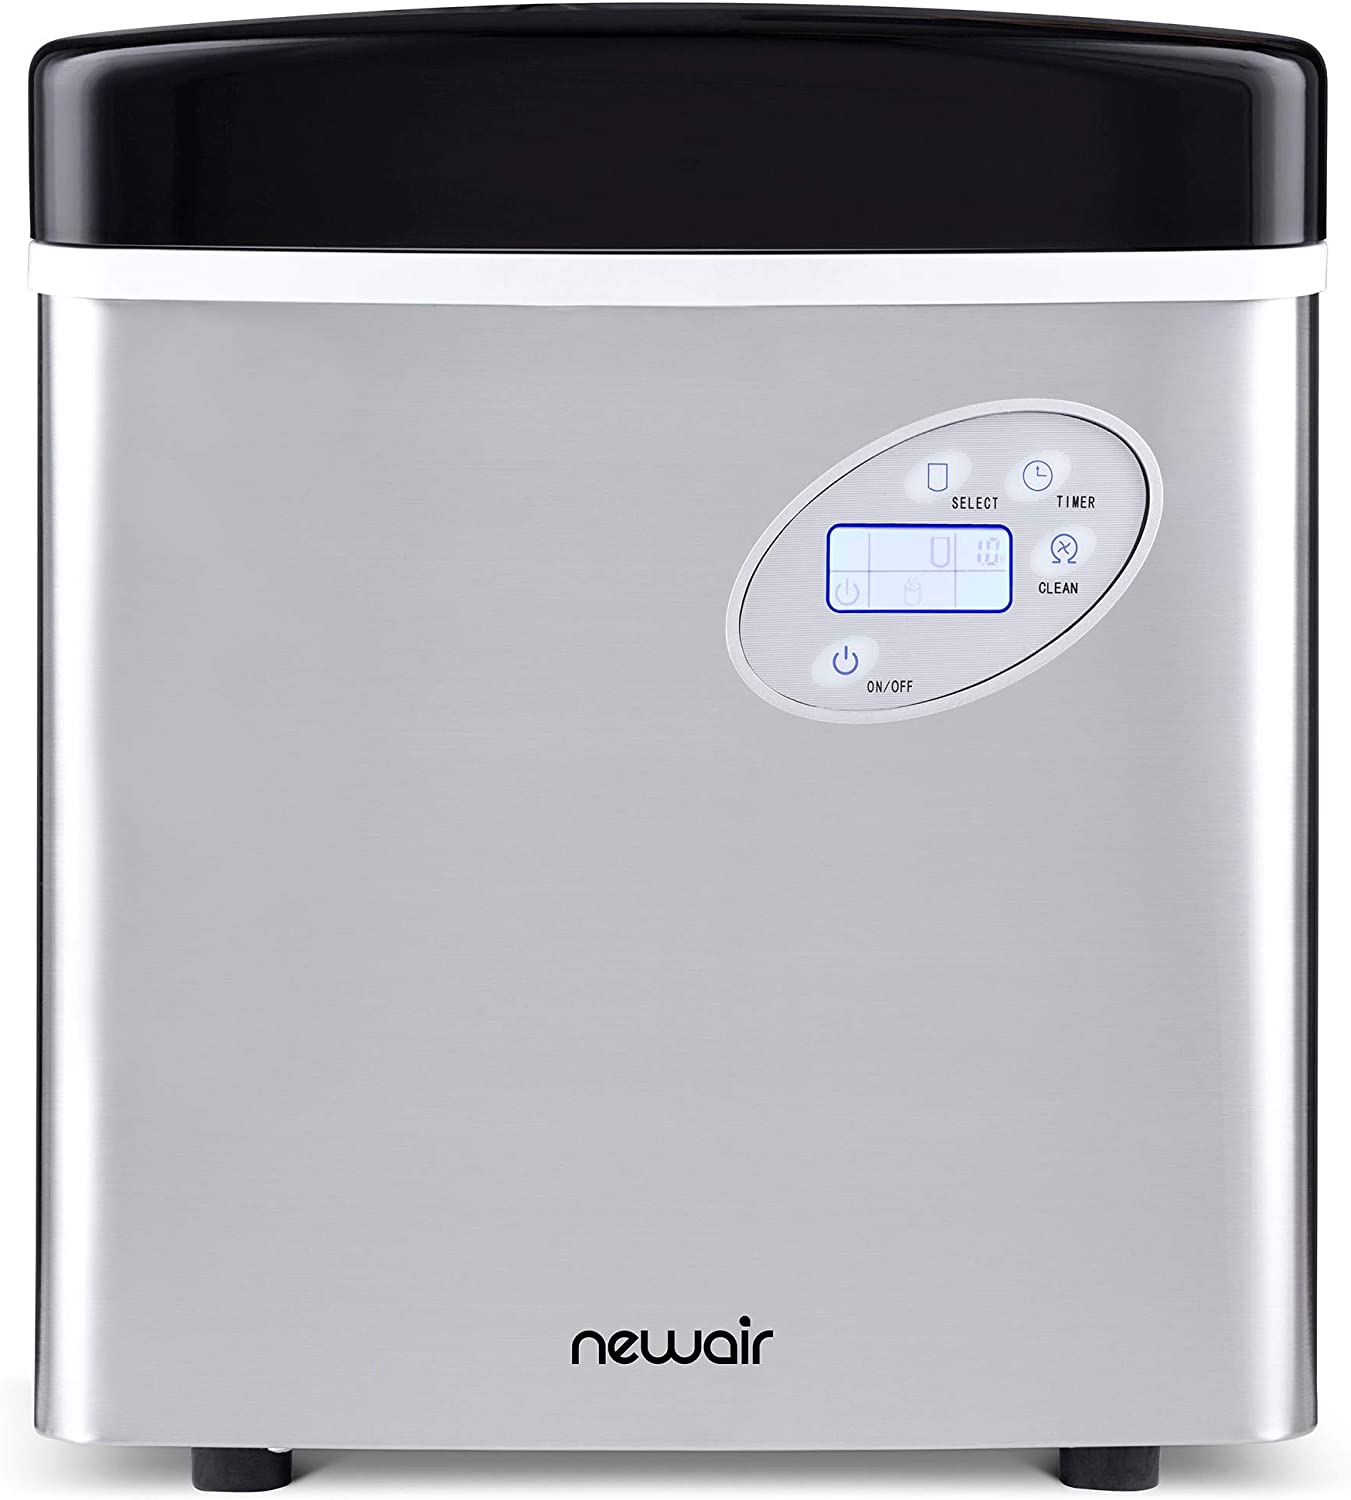 Newair AI-215SS Stainless Steel Portable Ice Maker Reviews 1